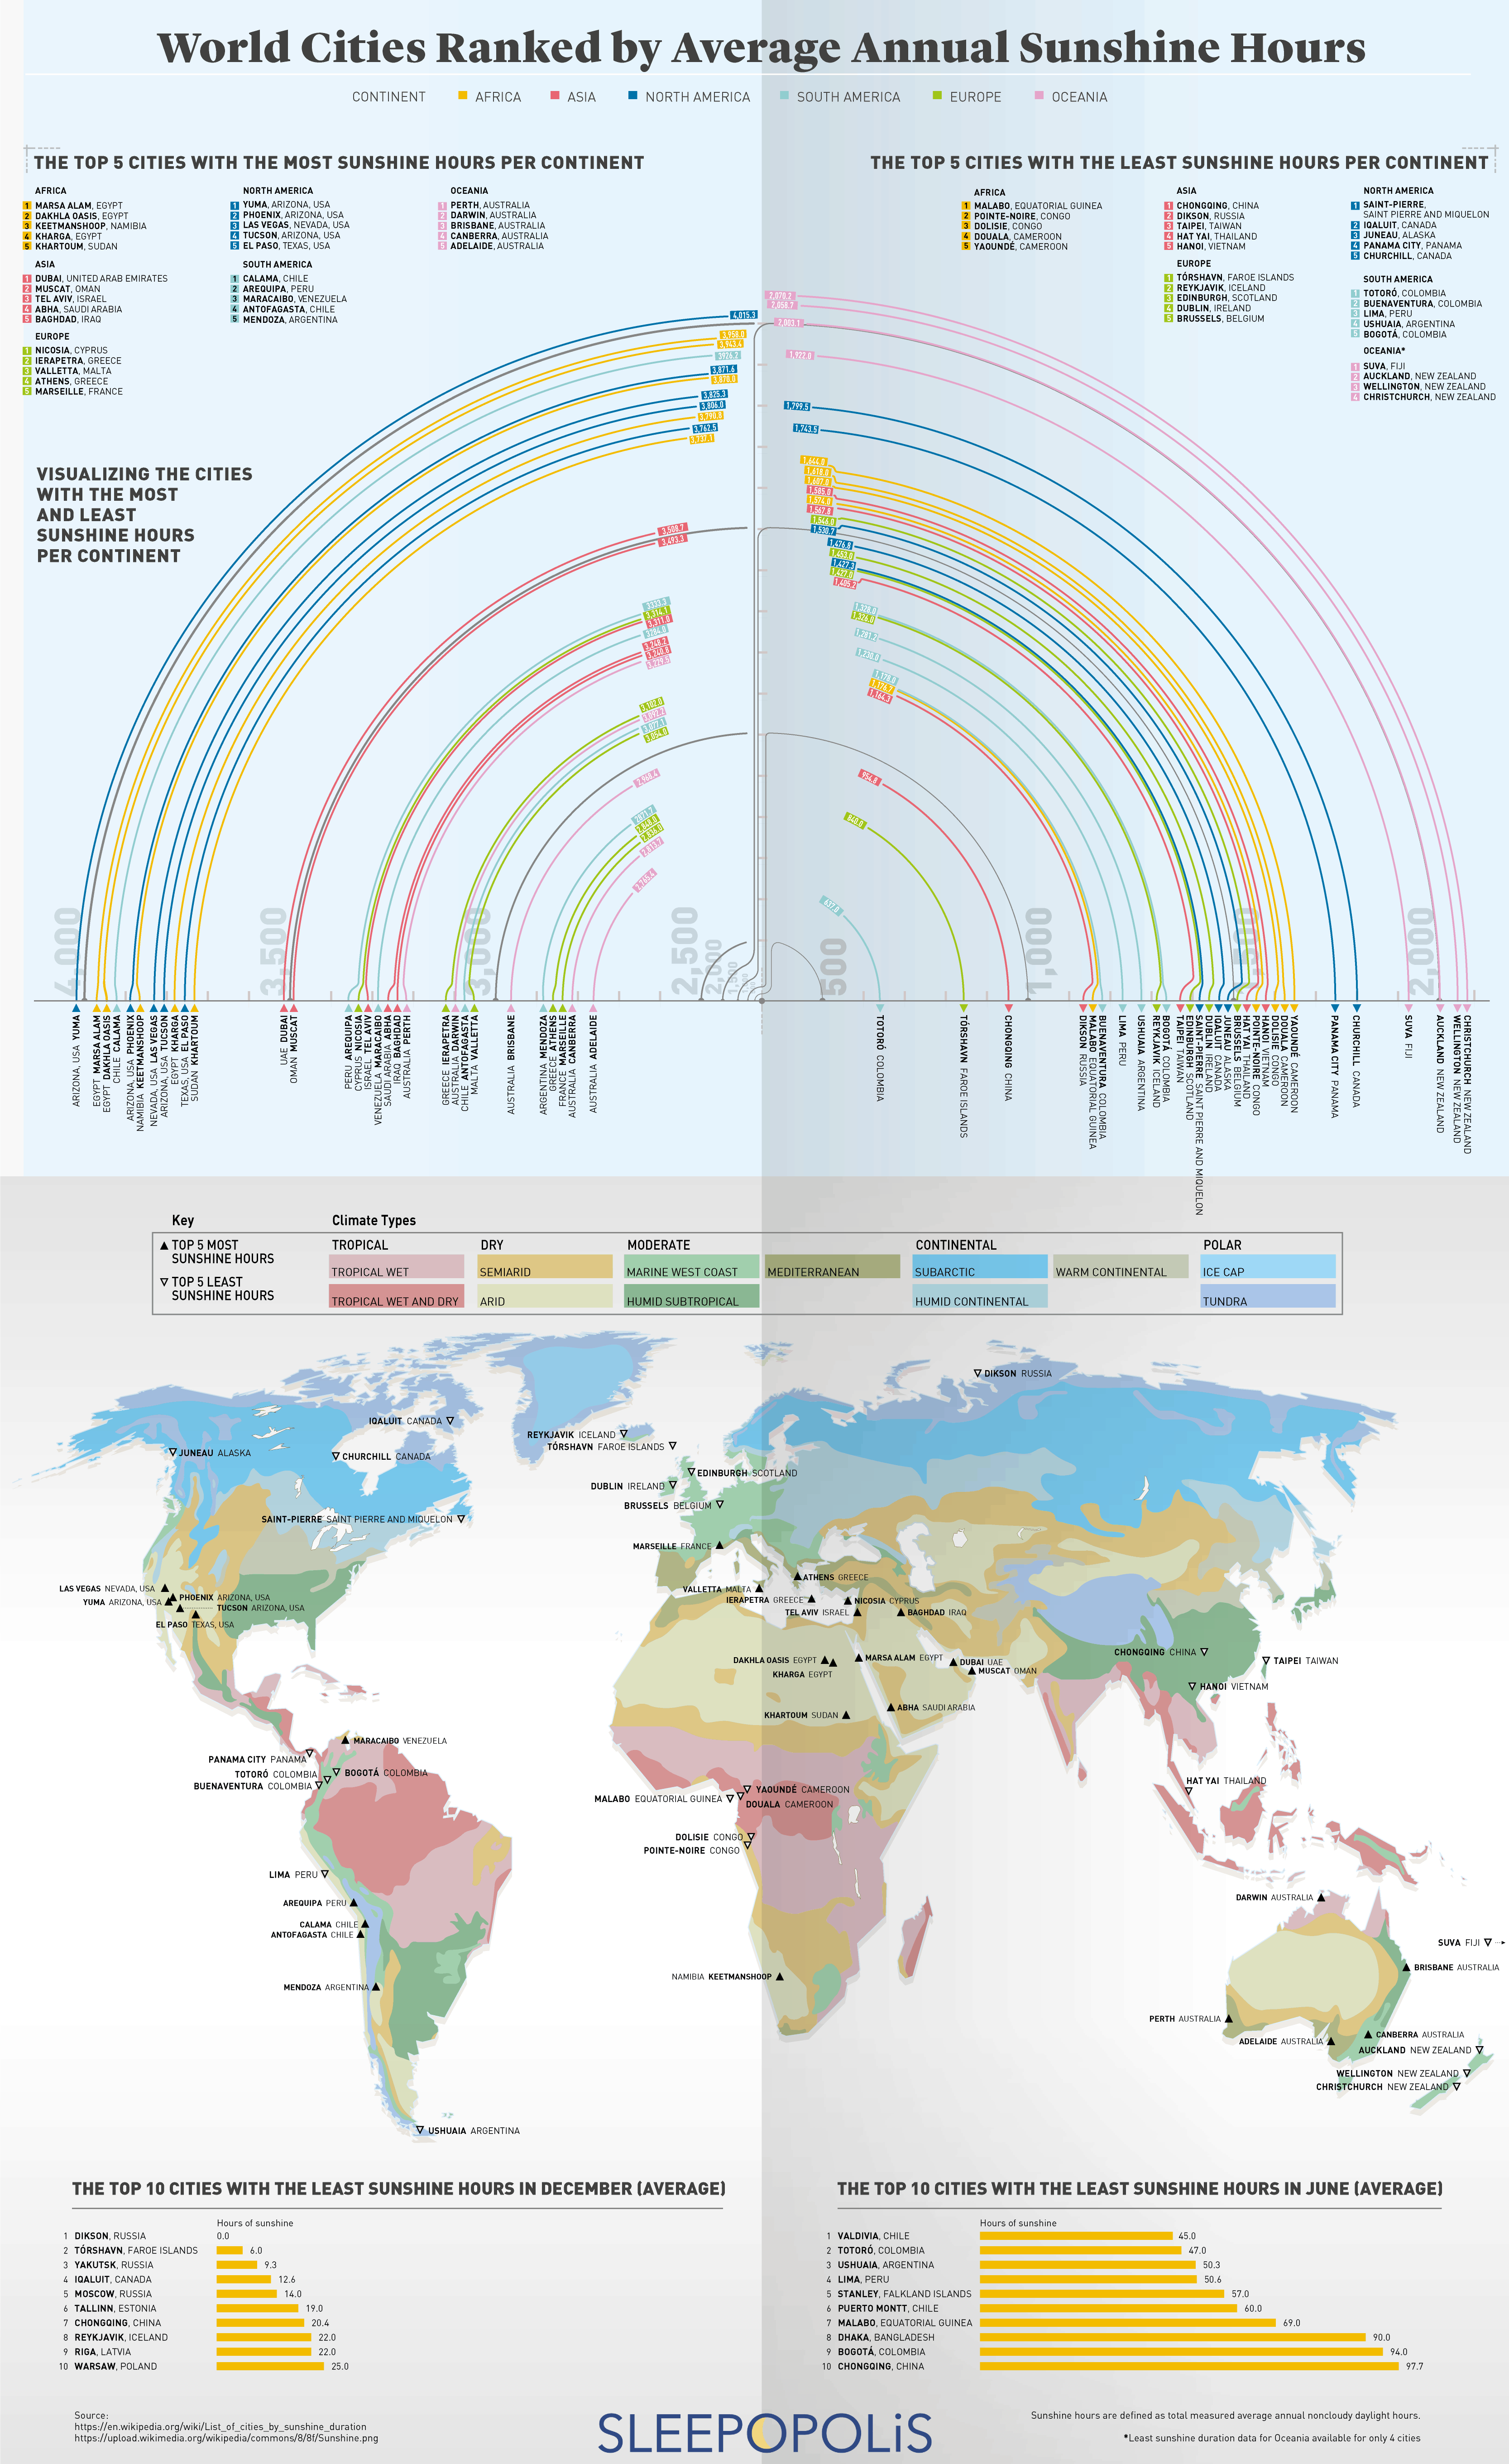 World Cities Ranked by Average Annual Sunshine Hours